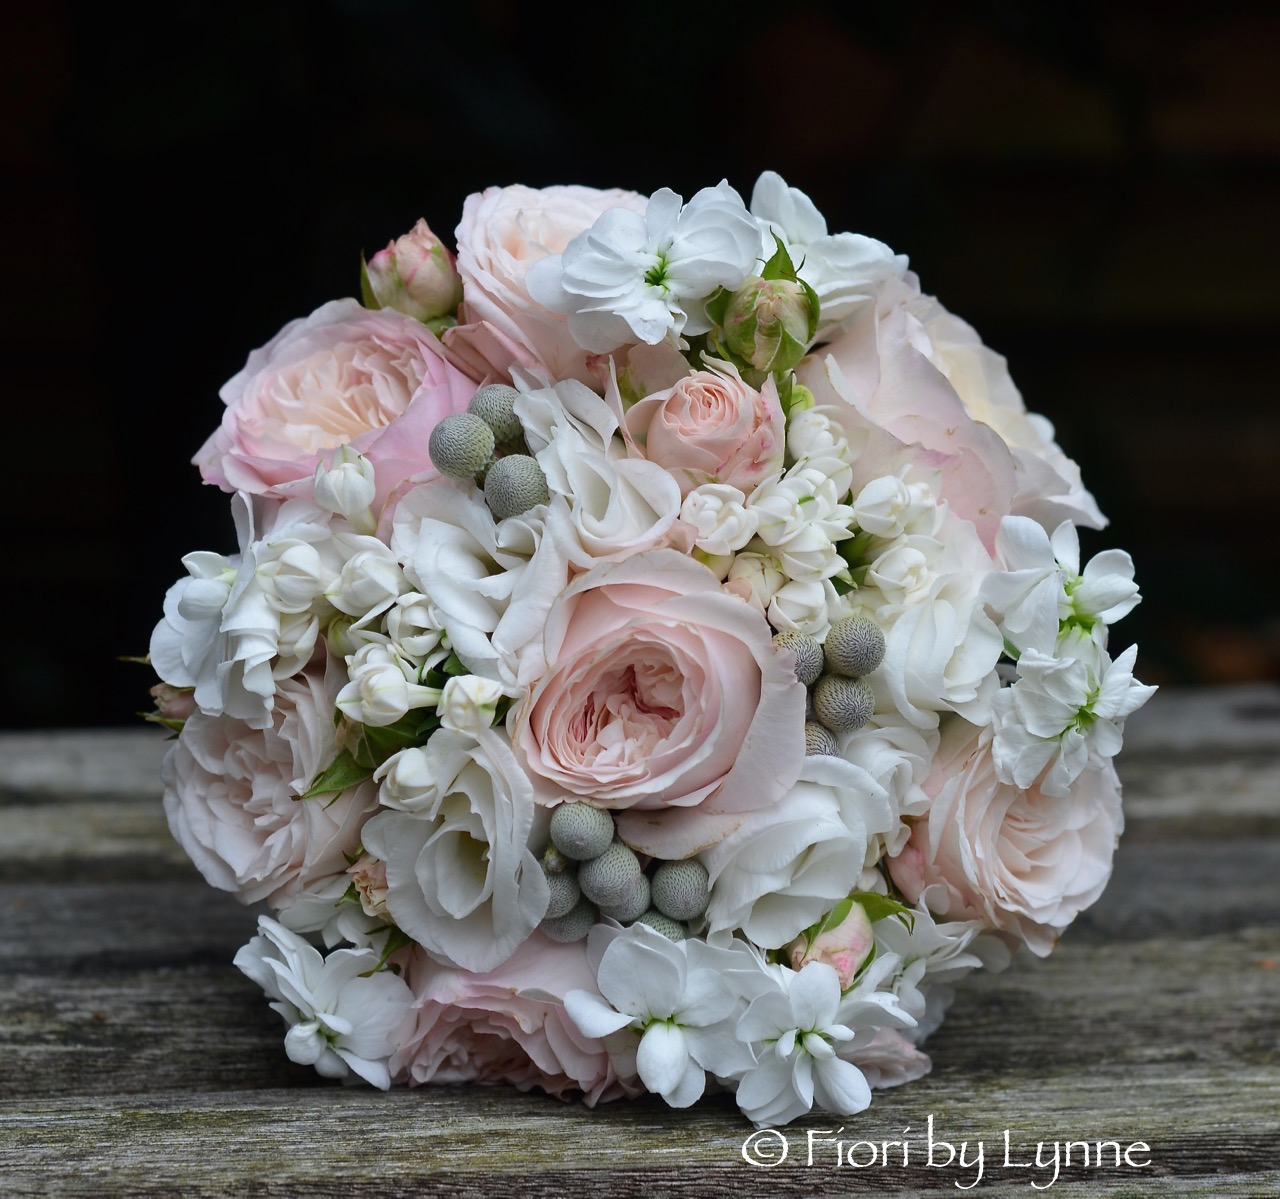 Wedding Flowers Blog: September 2016